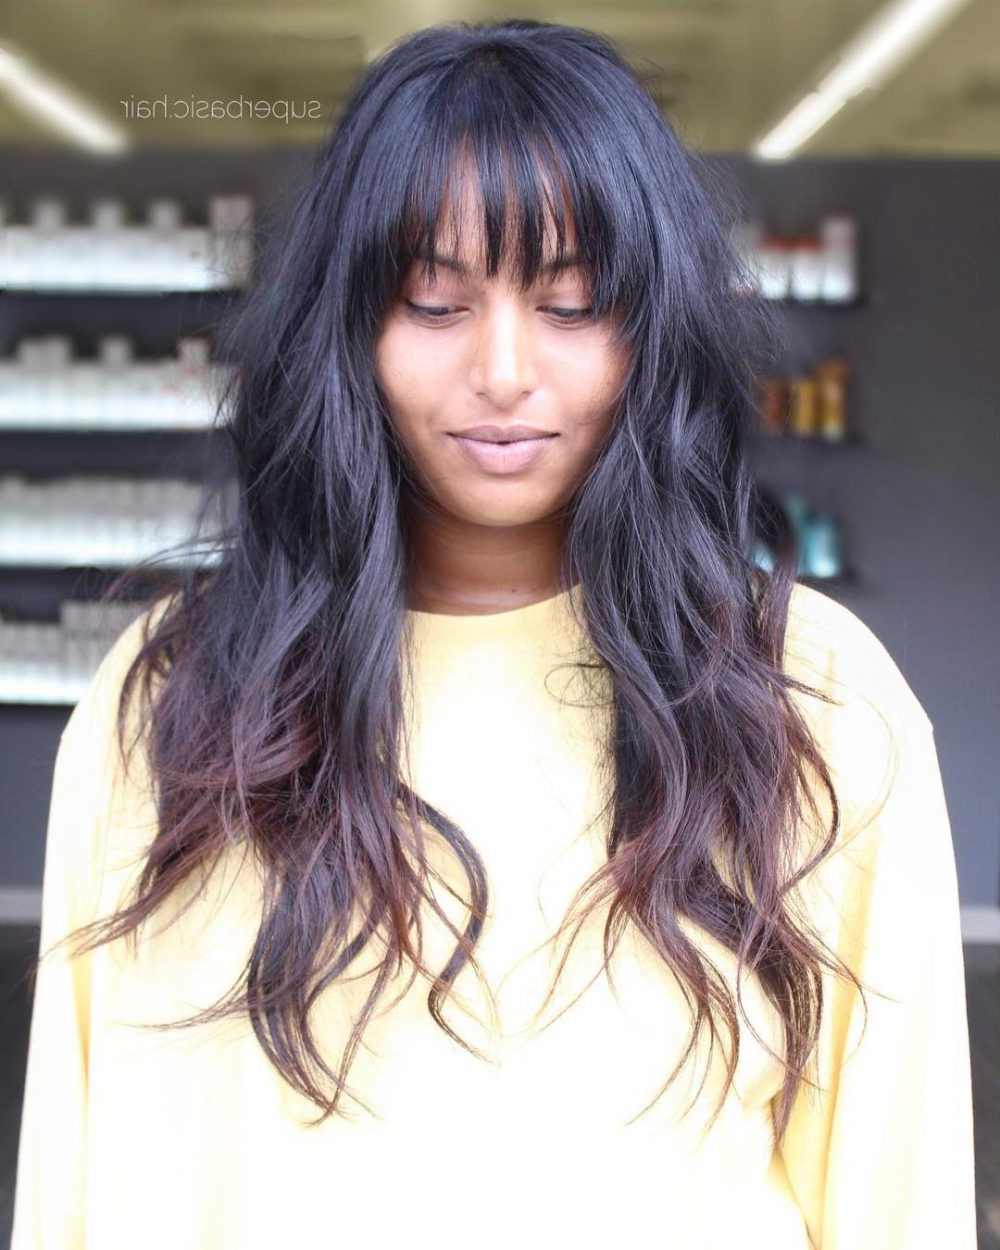 Long Shag Haircuts: 36 Examples For 2019 For Shaggy Haircuts With Bangs And Longer Layers (View 11 of 20)